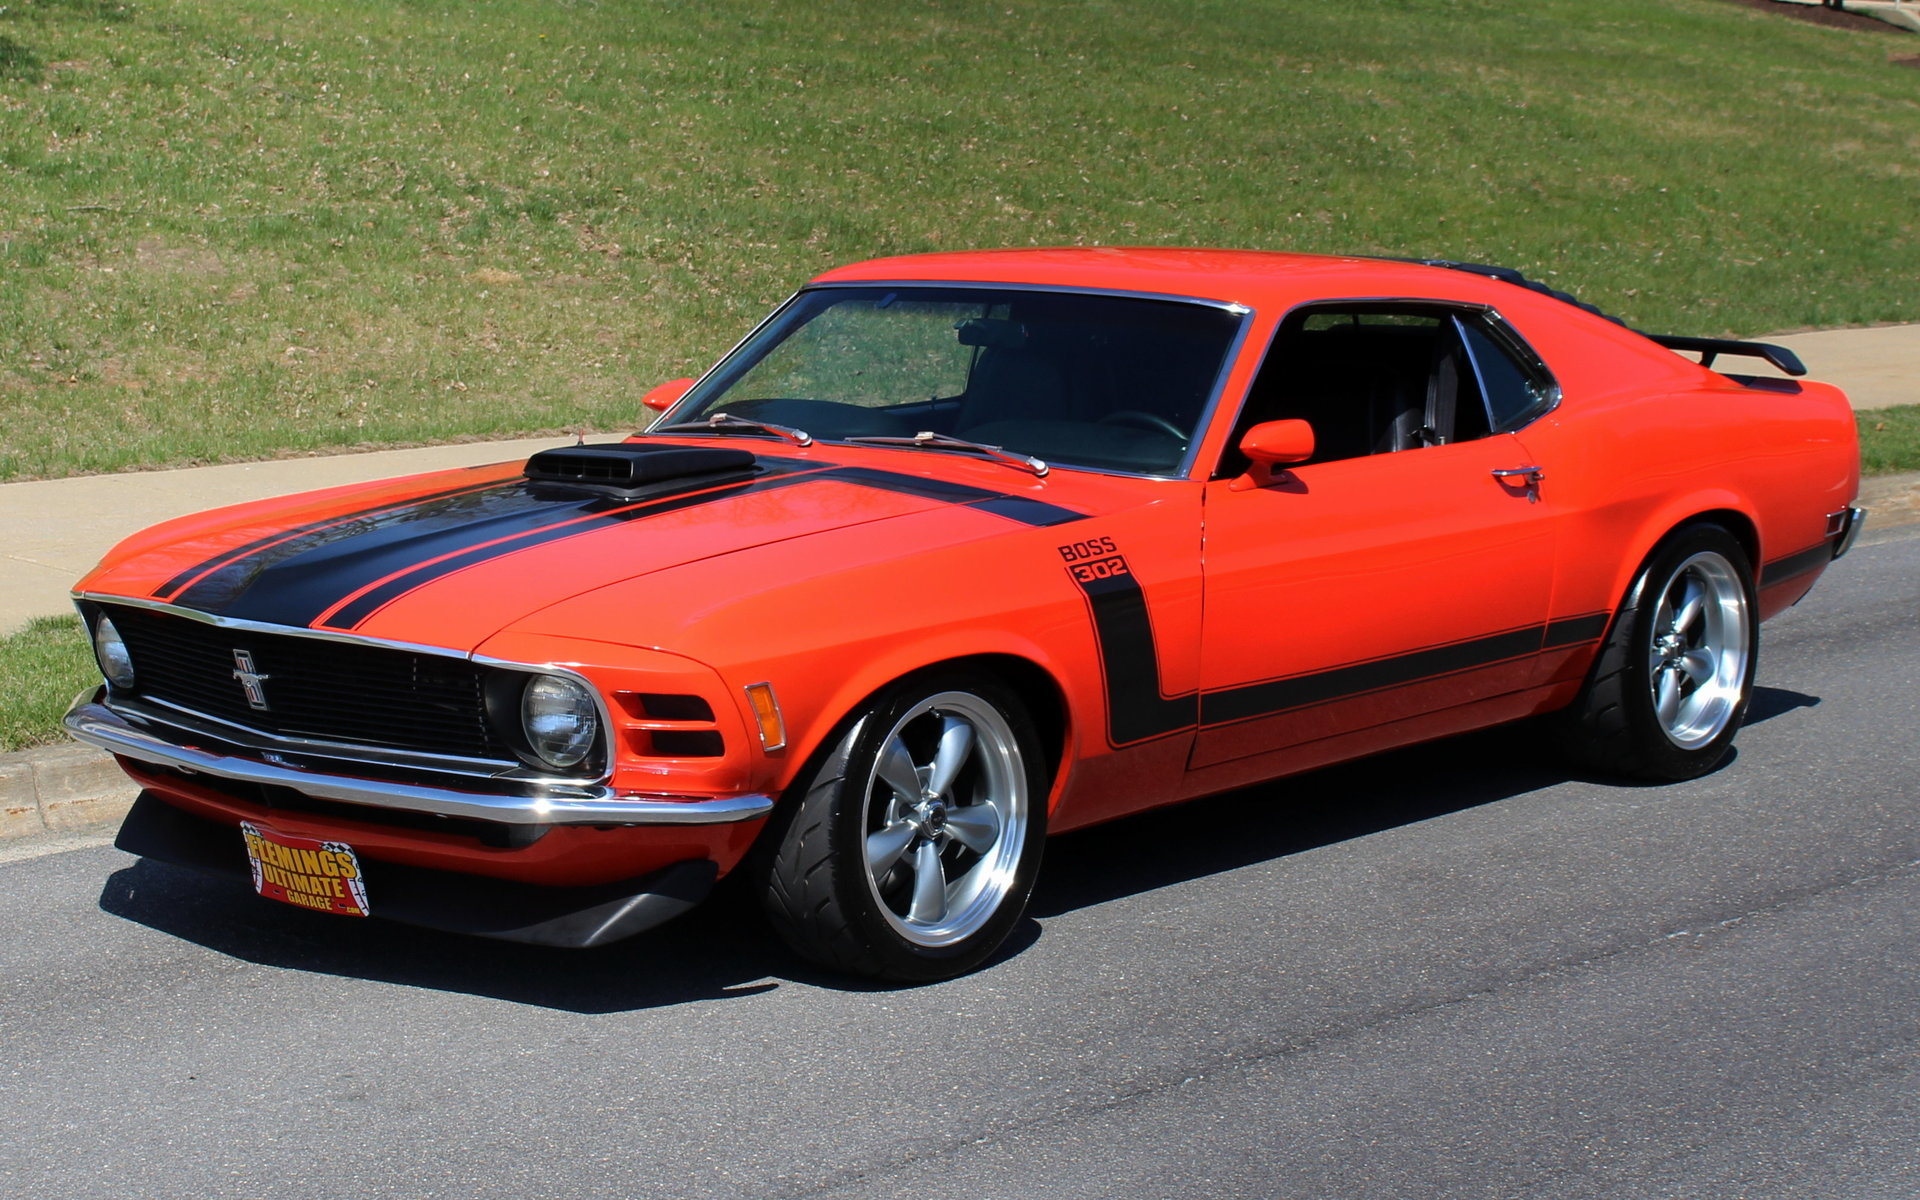 1970 ford mustang boss 302 r for sale 86222 mcg. Black Bedroom Furniture Sets. Home Design Ideas